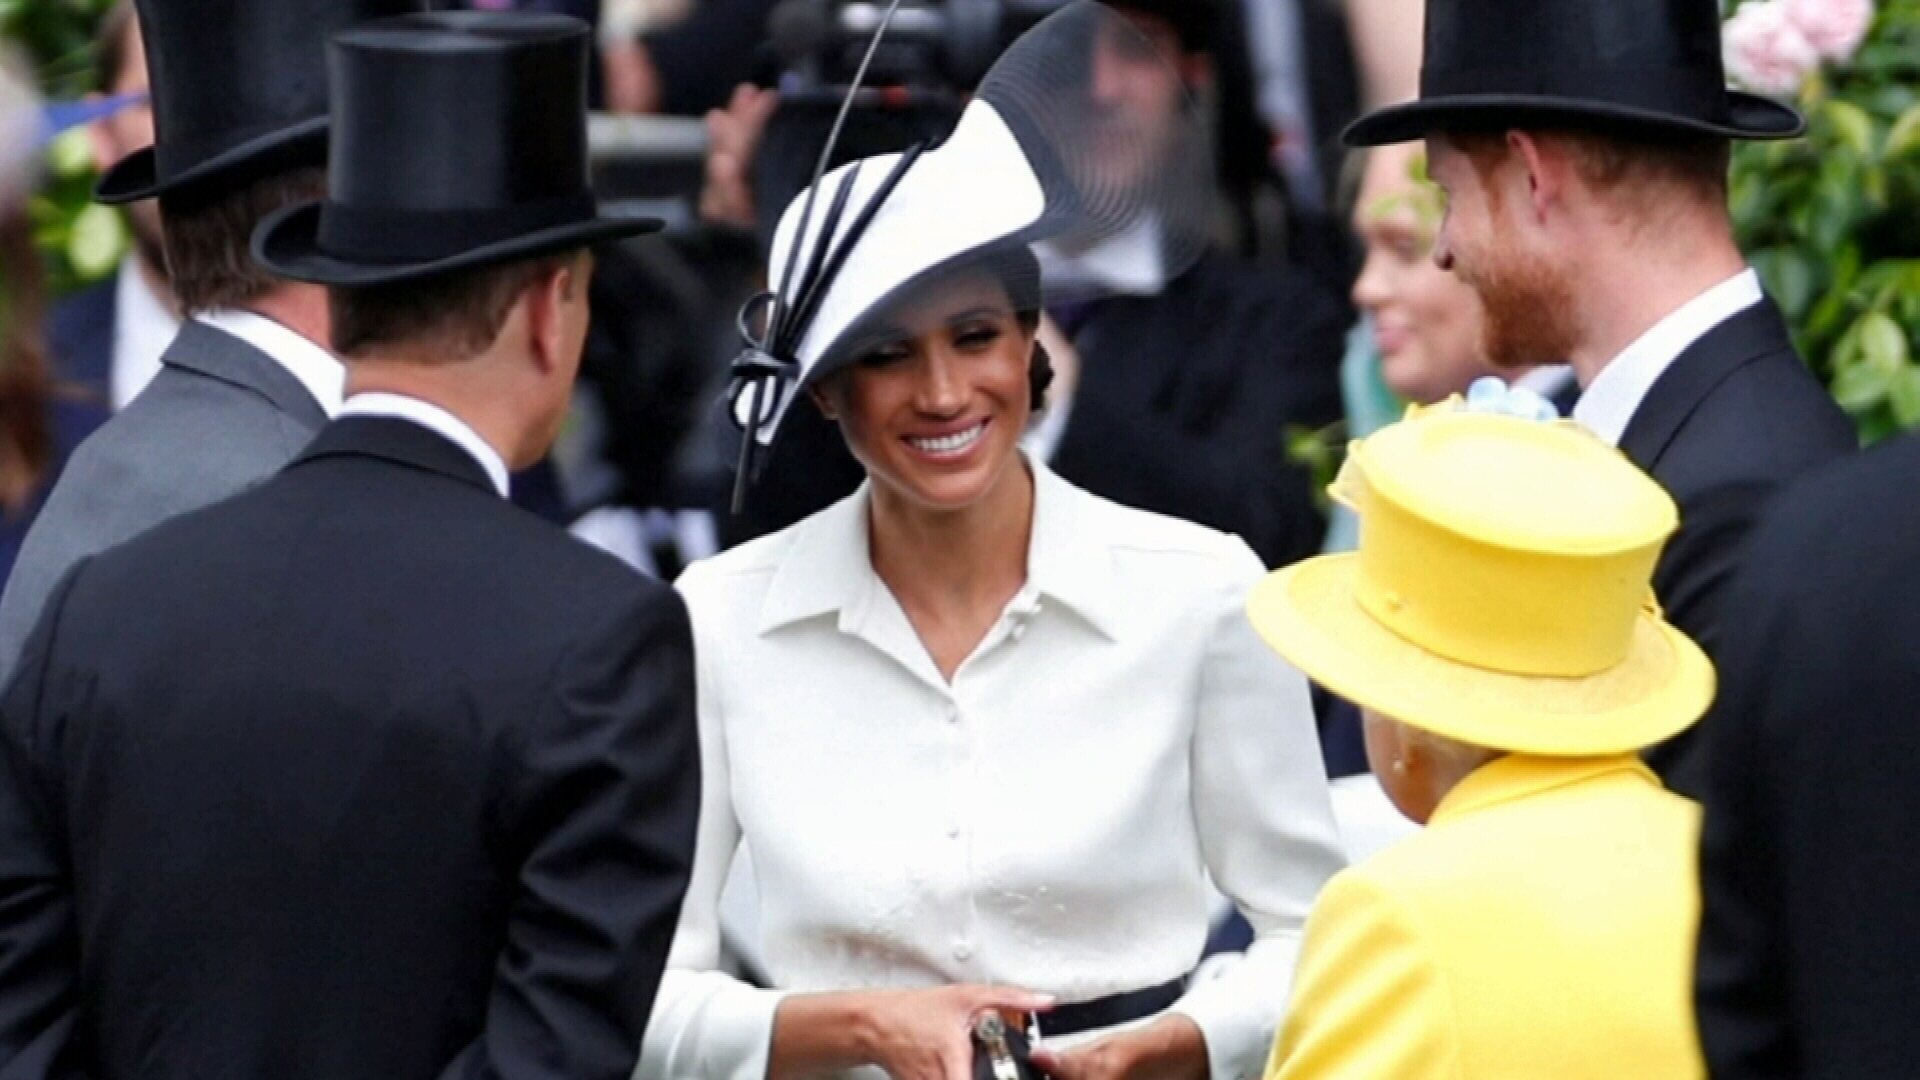 Meghan Markle makes Royal Ascot debut